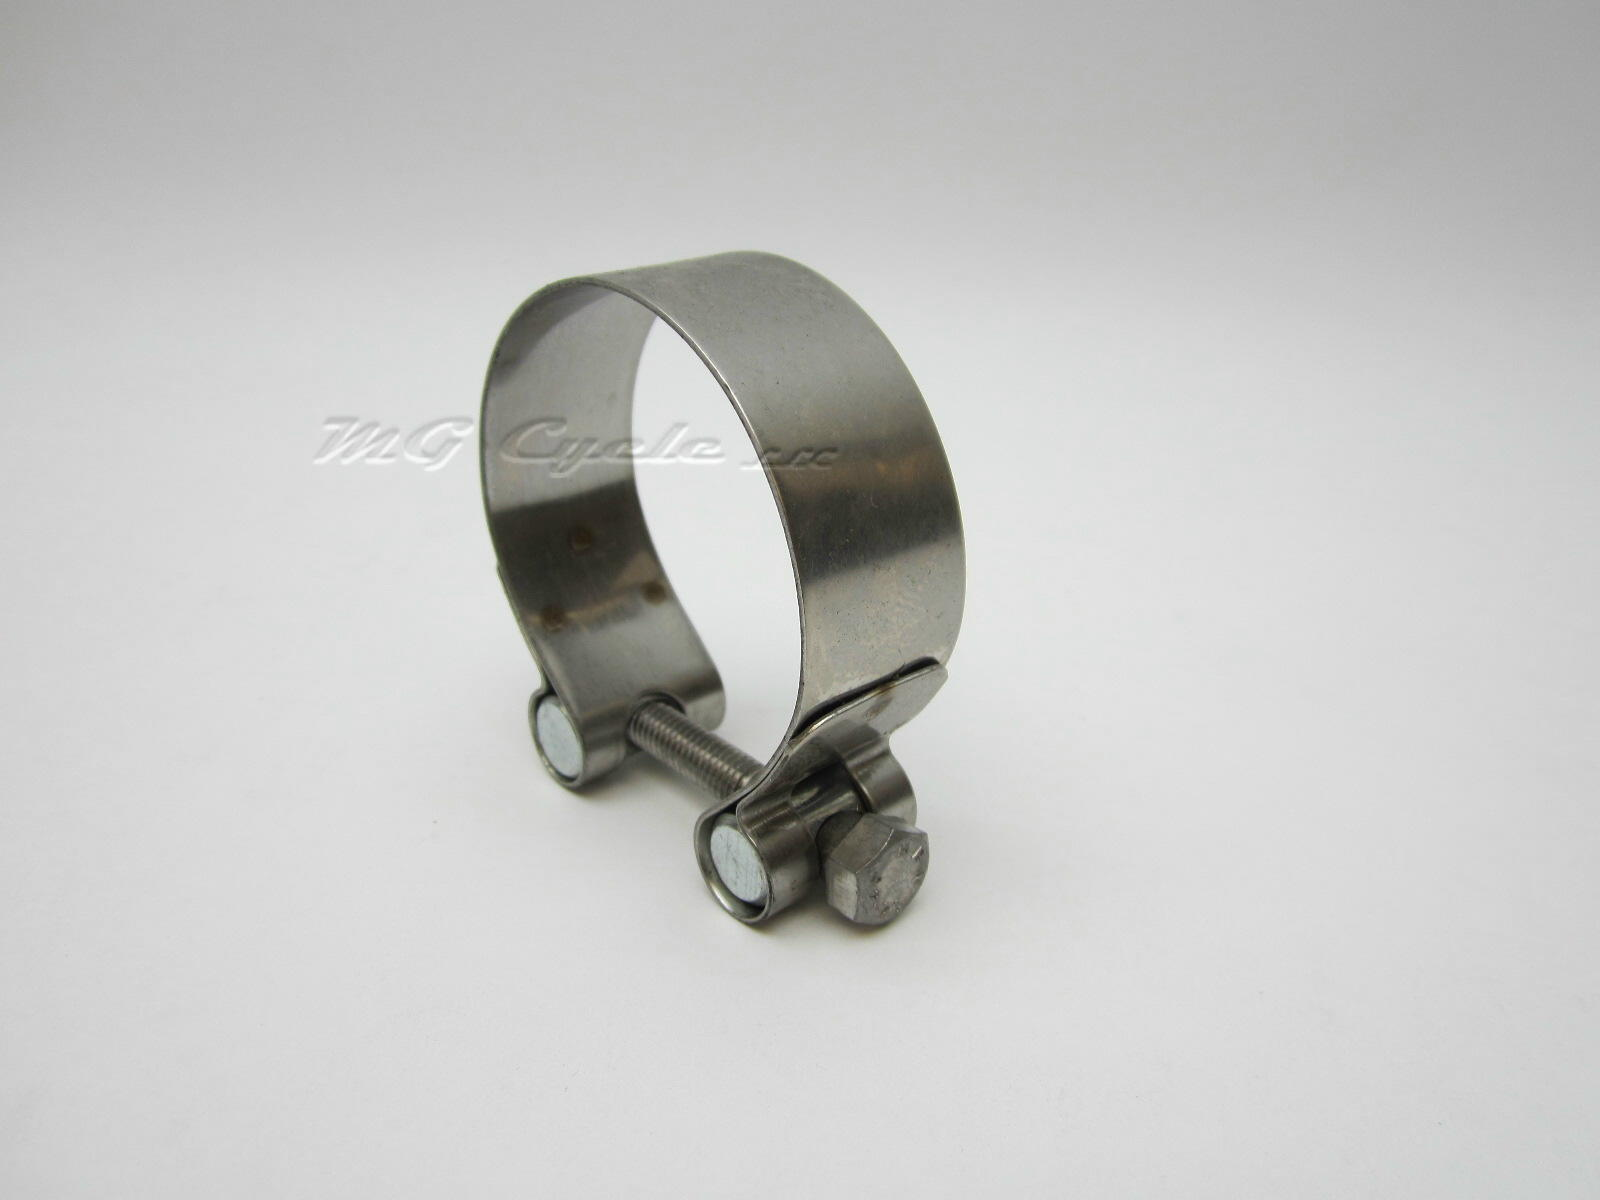 48.5mm exhaust clamp V11 Sport/LM, V7 750 series